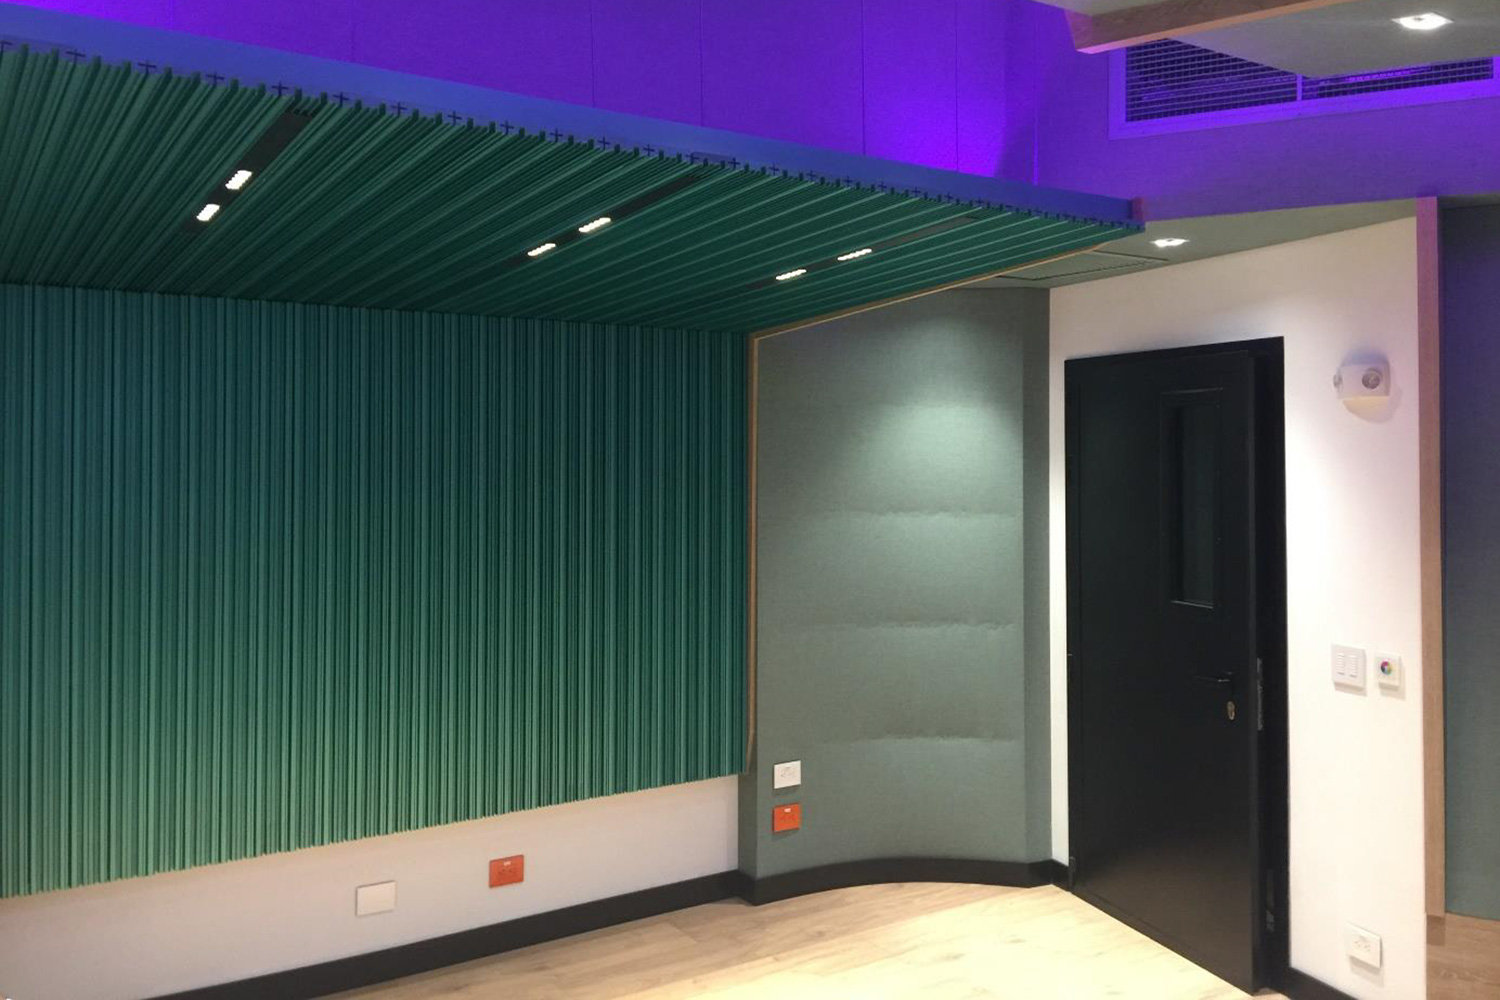 Universidad ICESI in Cali, Colombia commissioned WSDG to design their new music performance, composition and production building with world-class recording studios. Control Room A back diffusor.